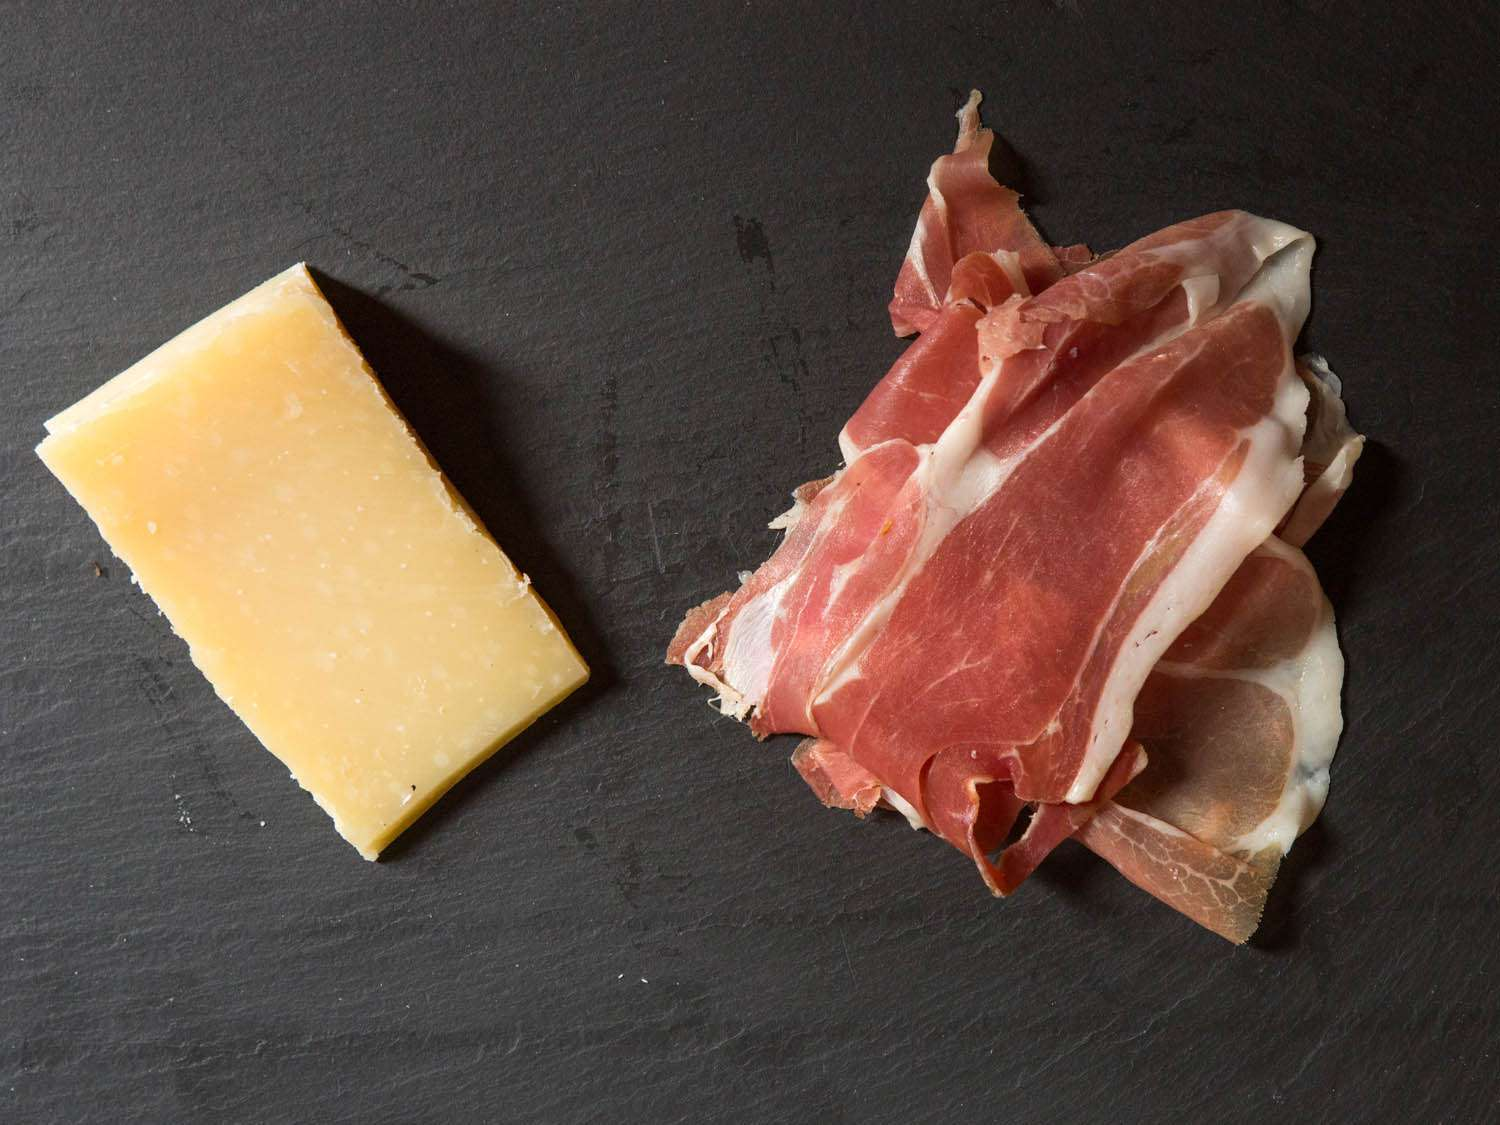 20140929-meat-cheese-vicky-wasik-4.jpg